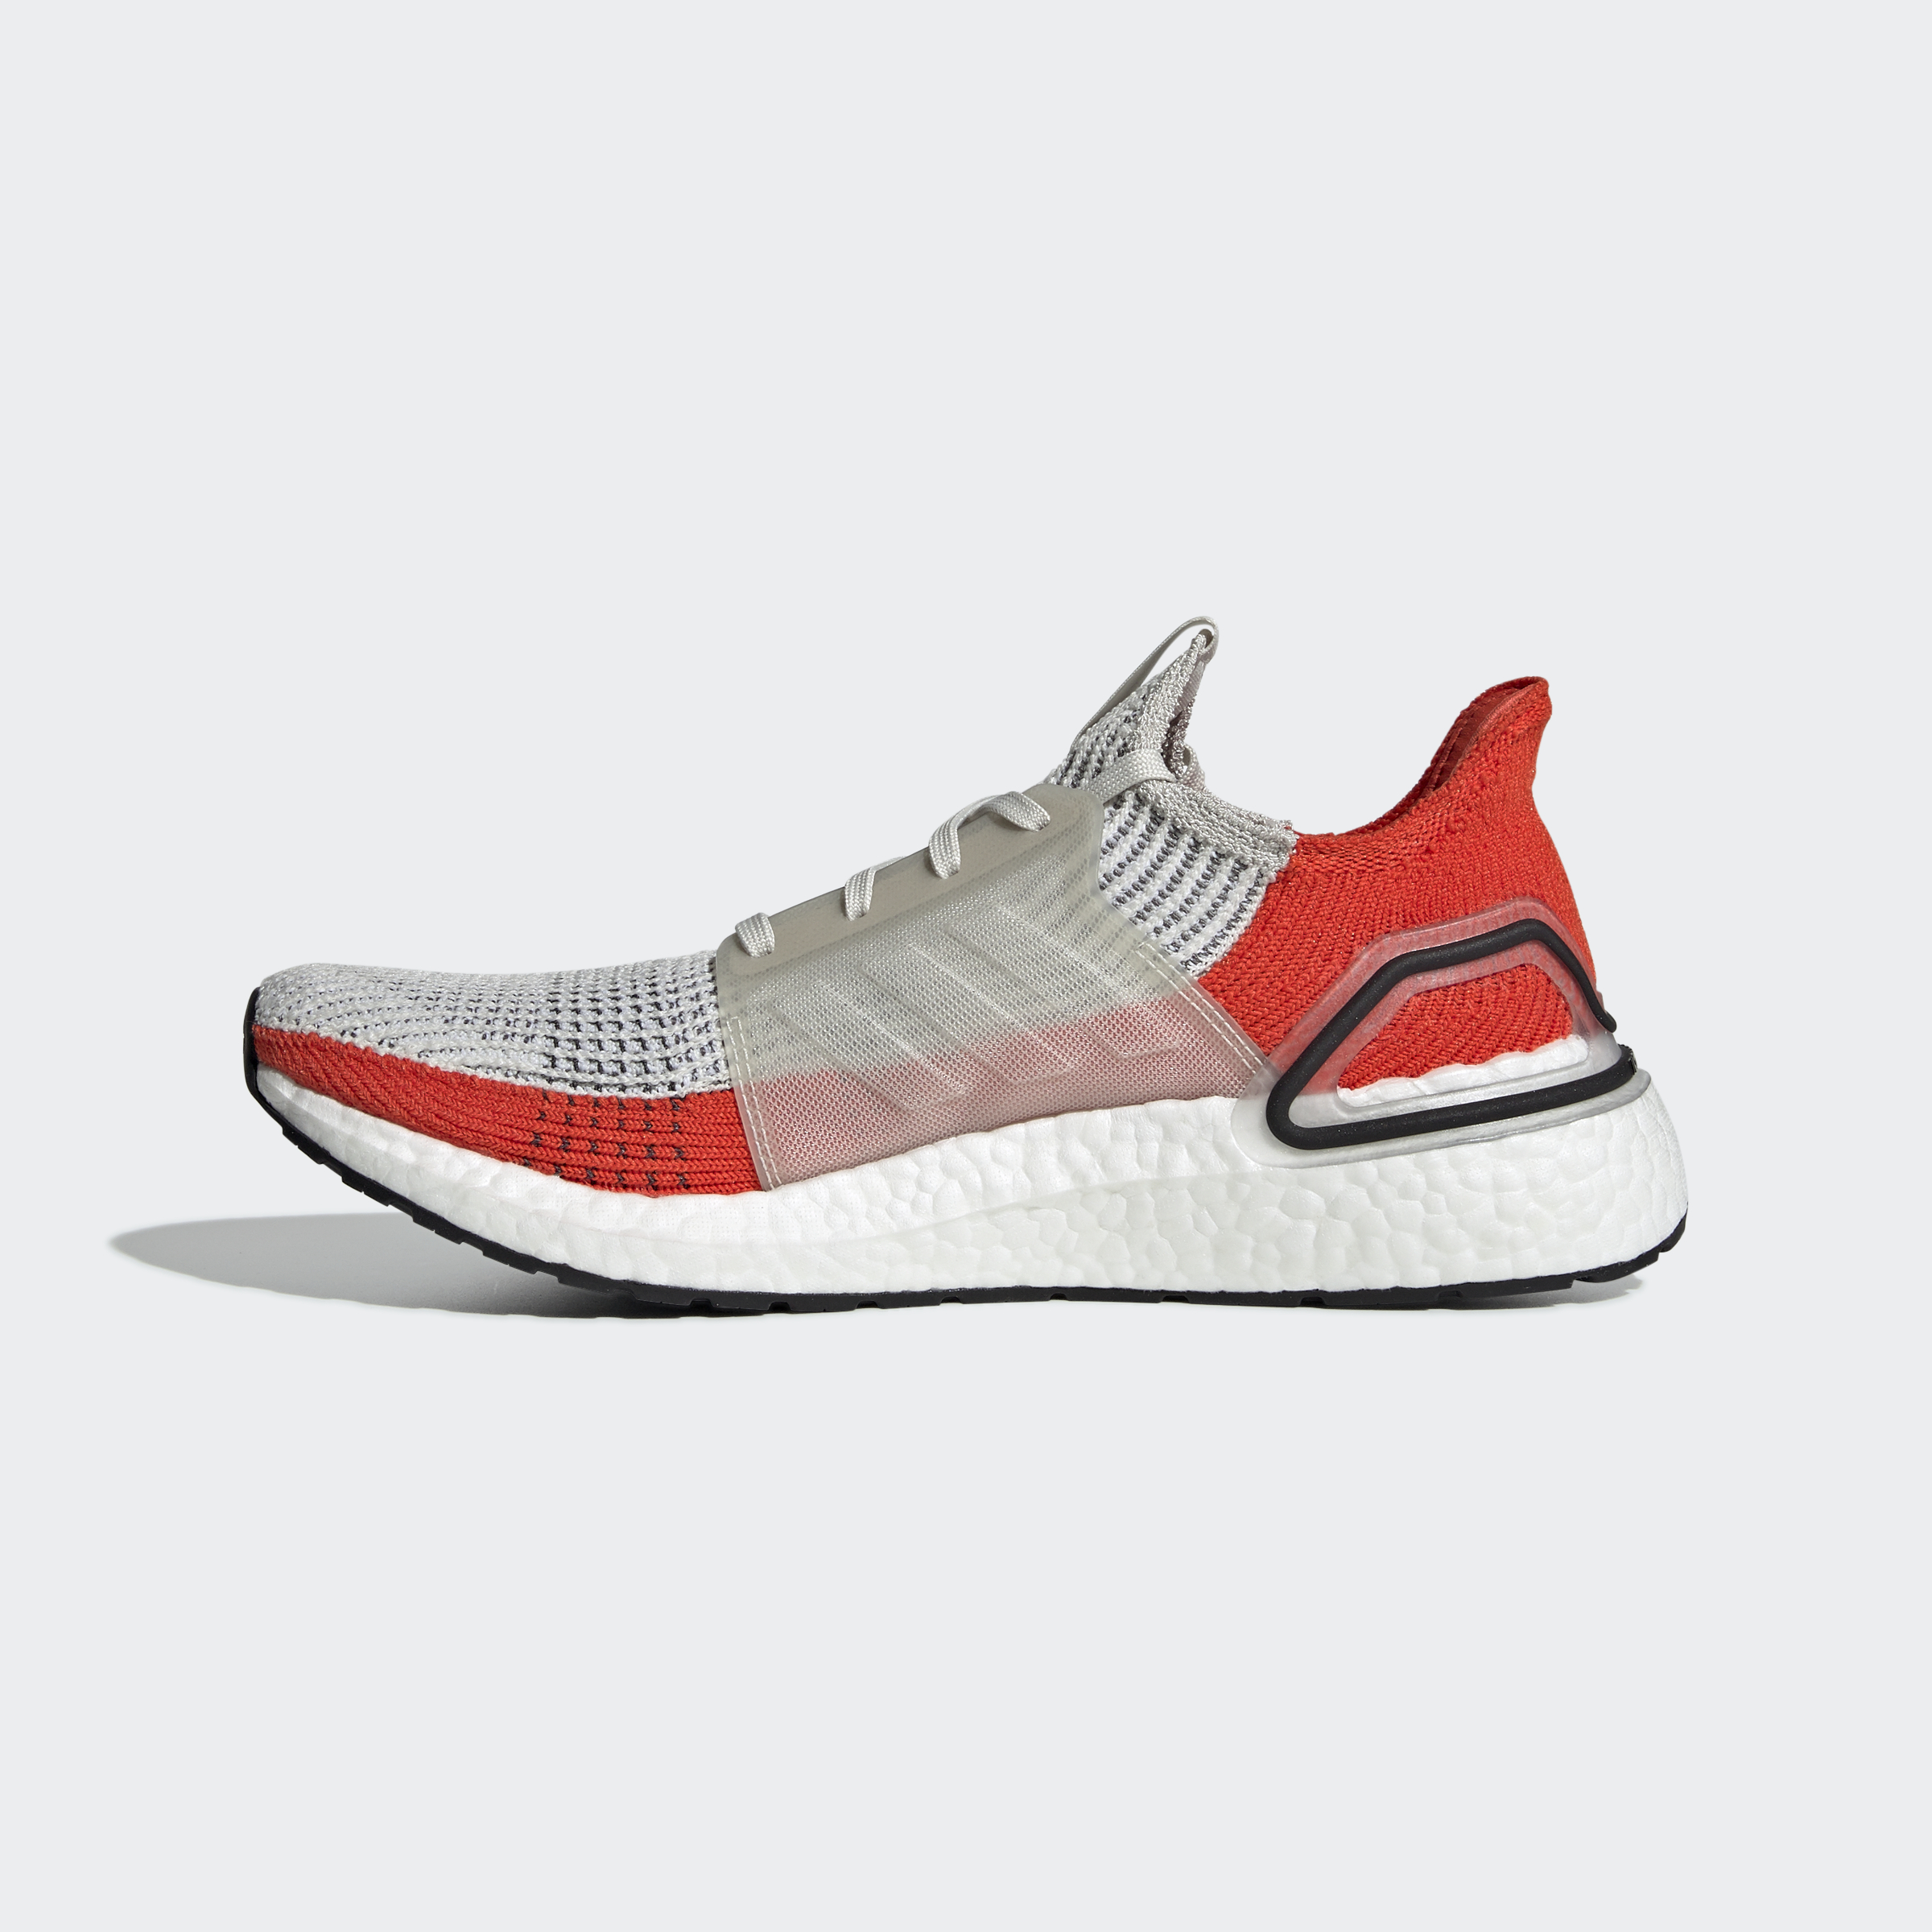 adidas-Ultraboost-19-Shoes-Athletic-amp-Sneakers thumbnail 54